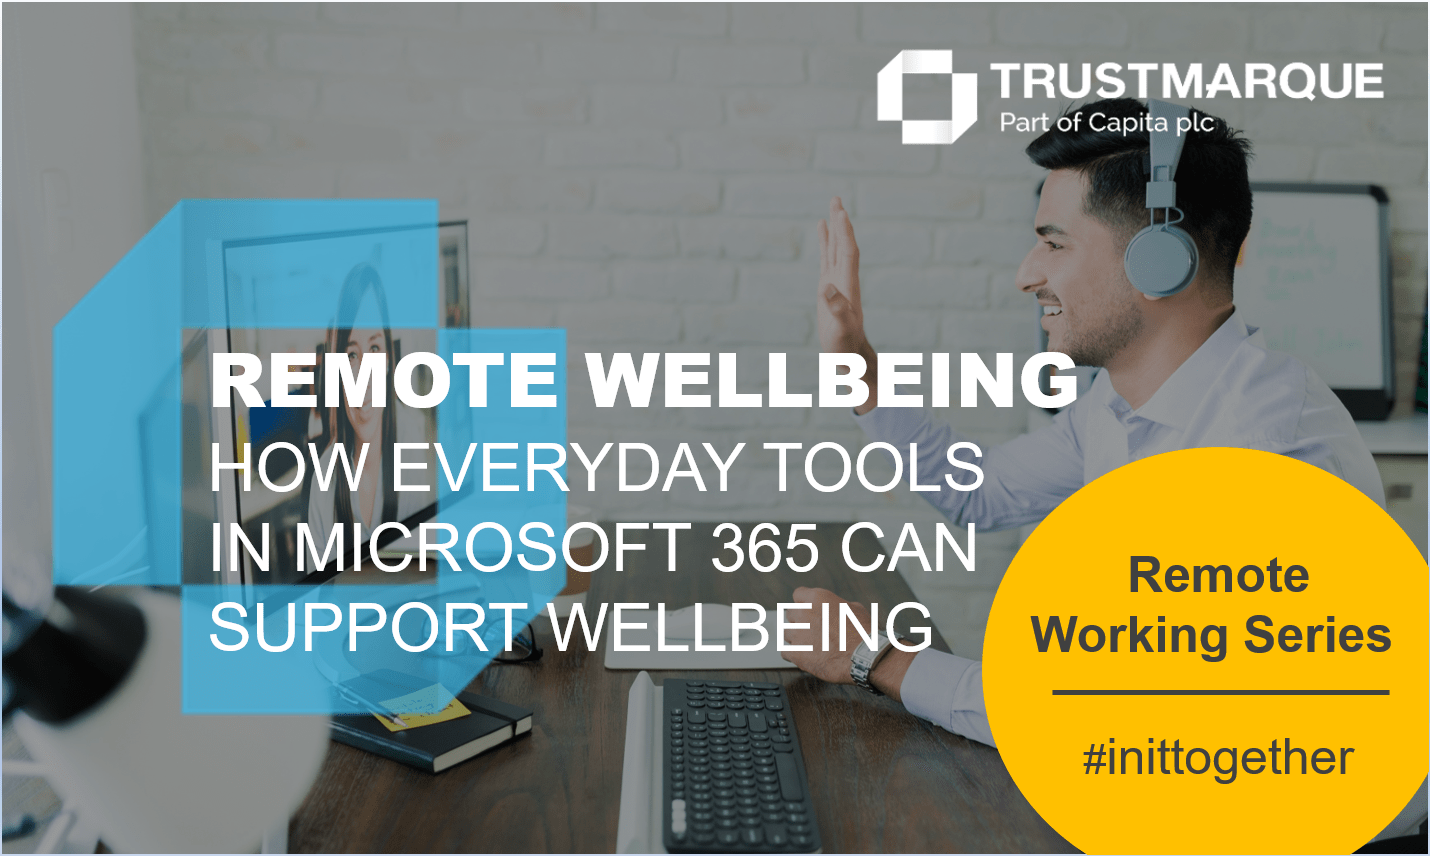 REMOTE WELLBEING MICROSOFT 365